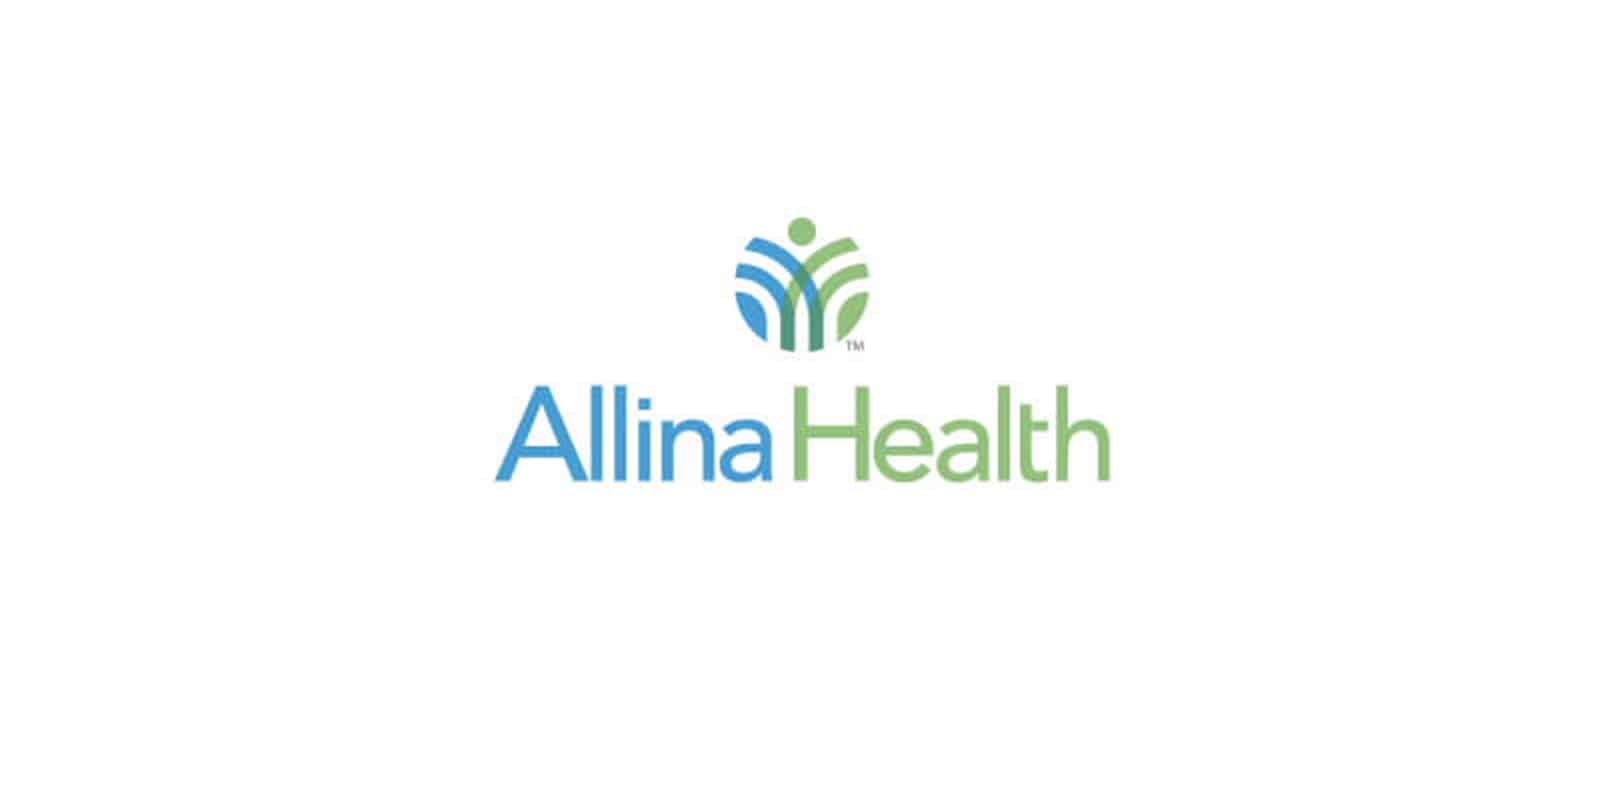 allina-health-logo.jpg